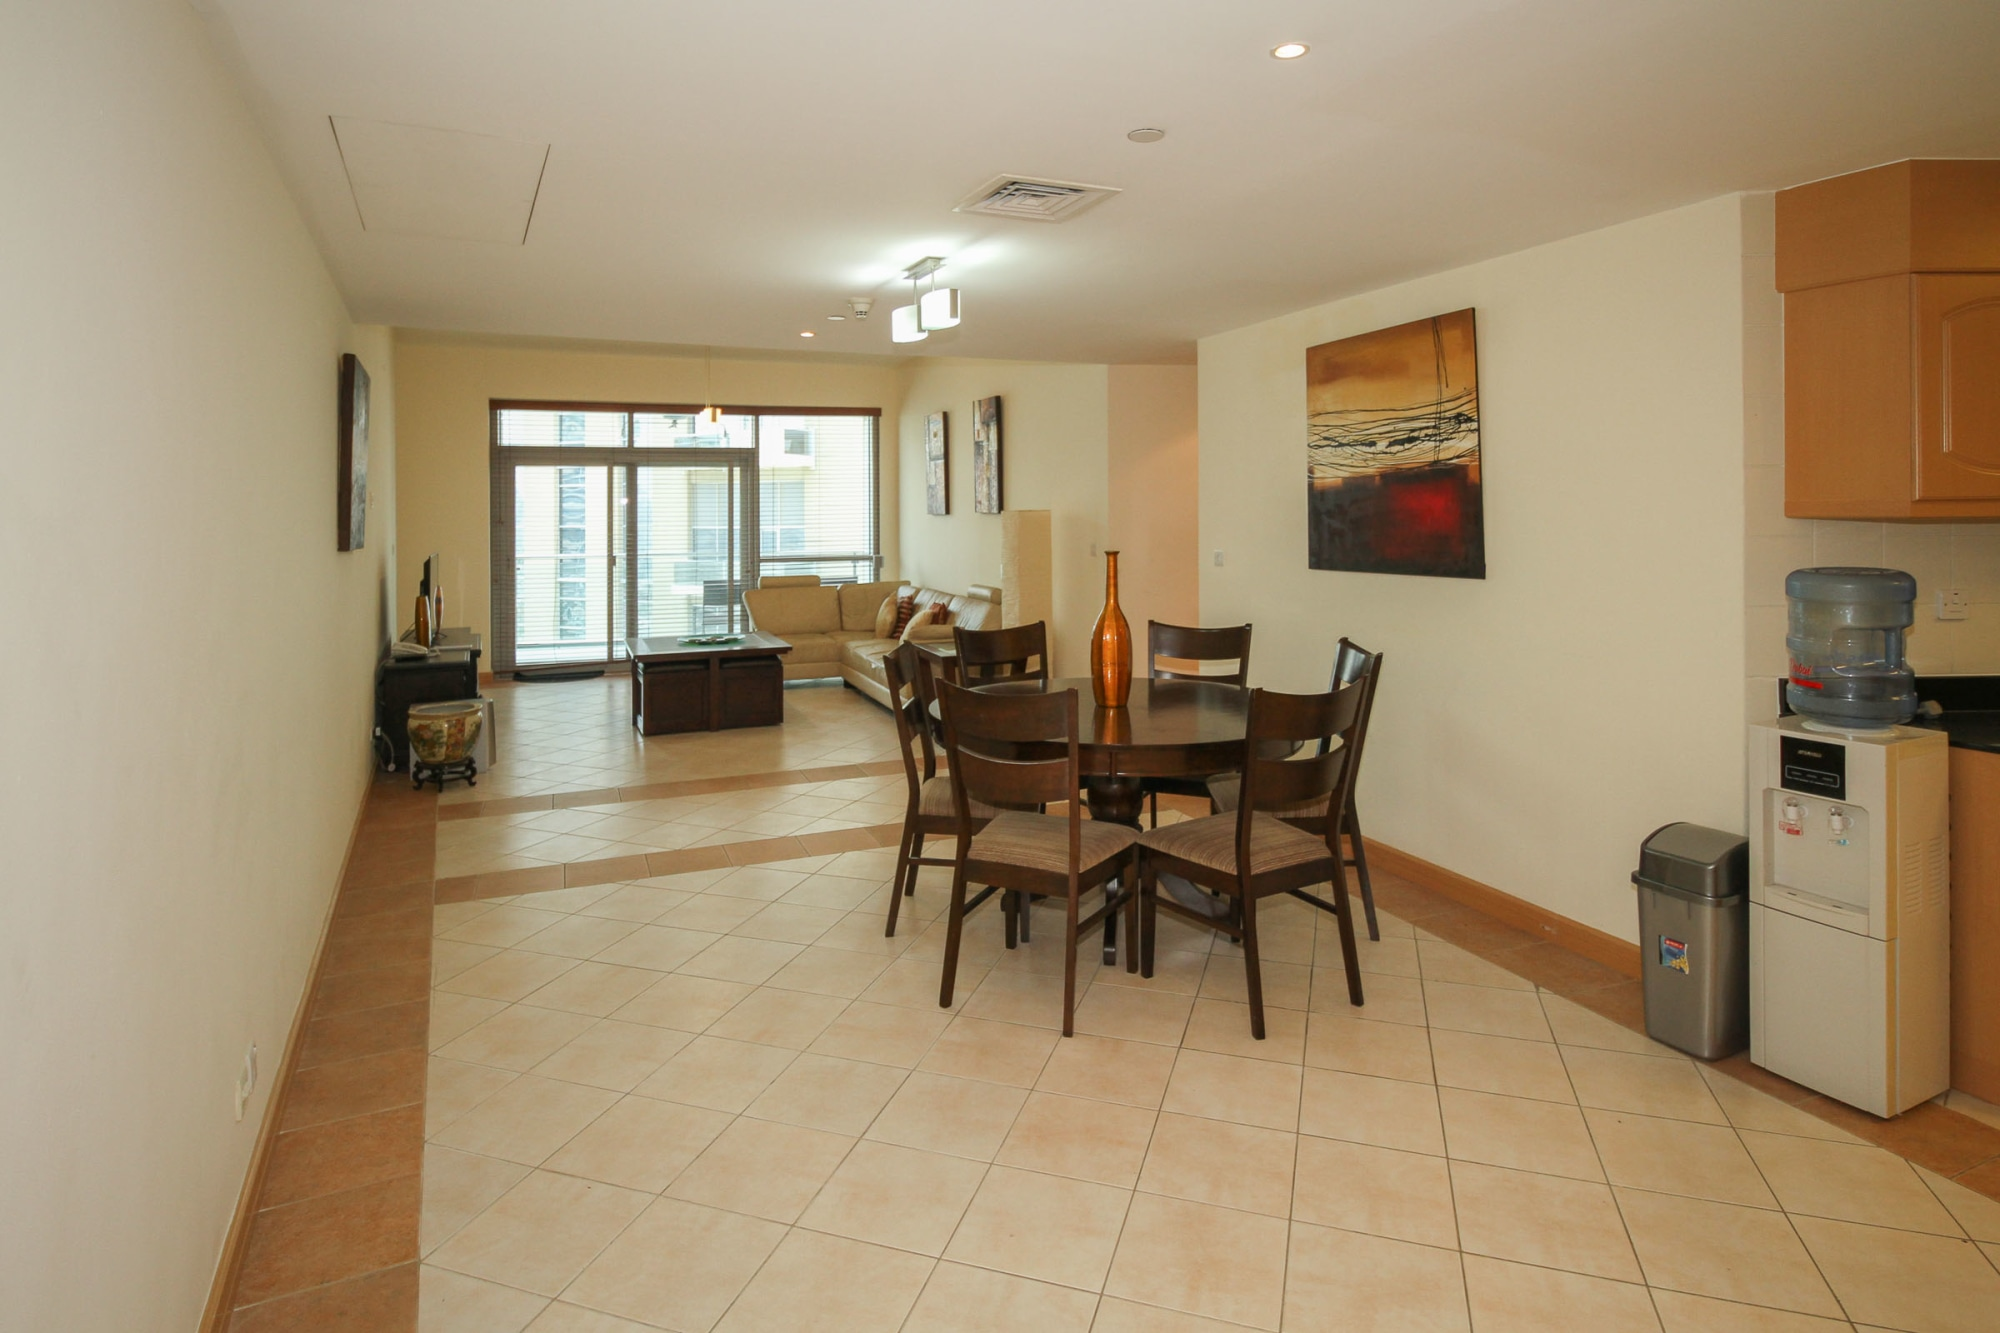 2 Bed + Maid |Marina View| High Floor |Vacant